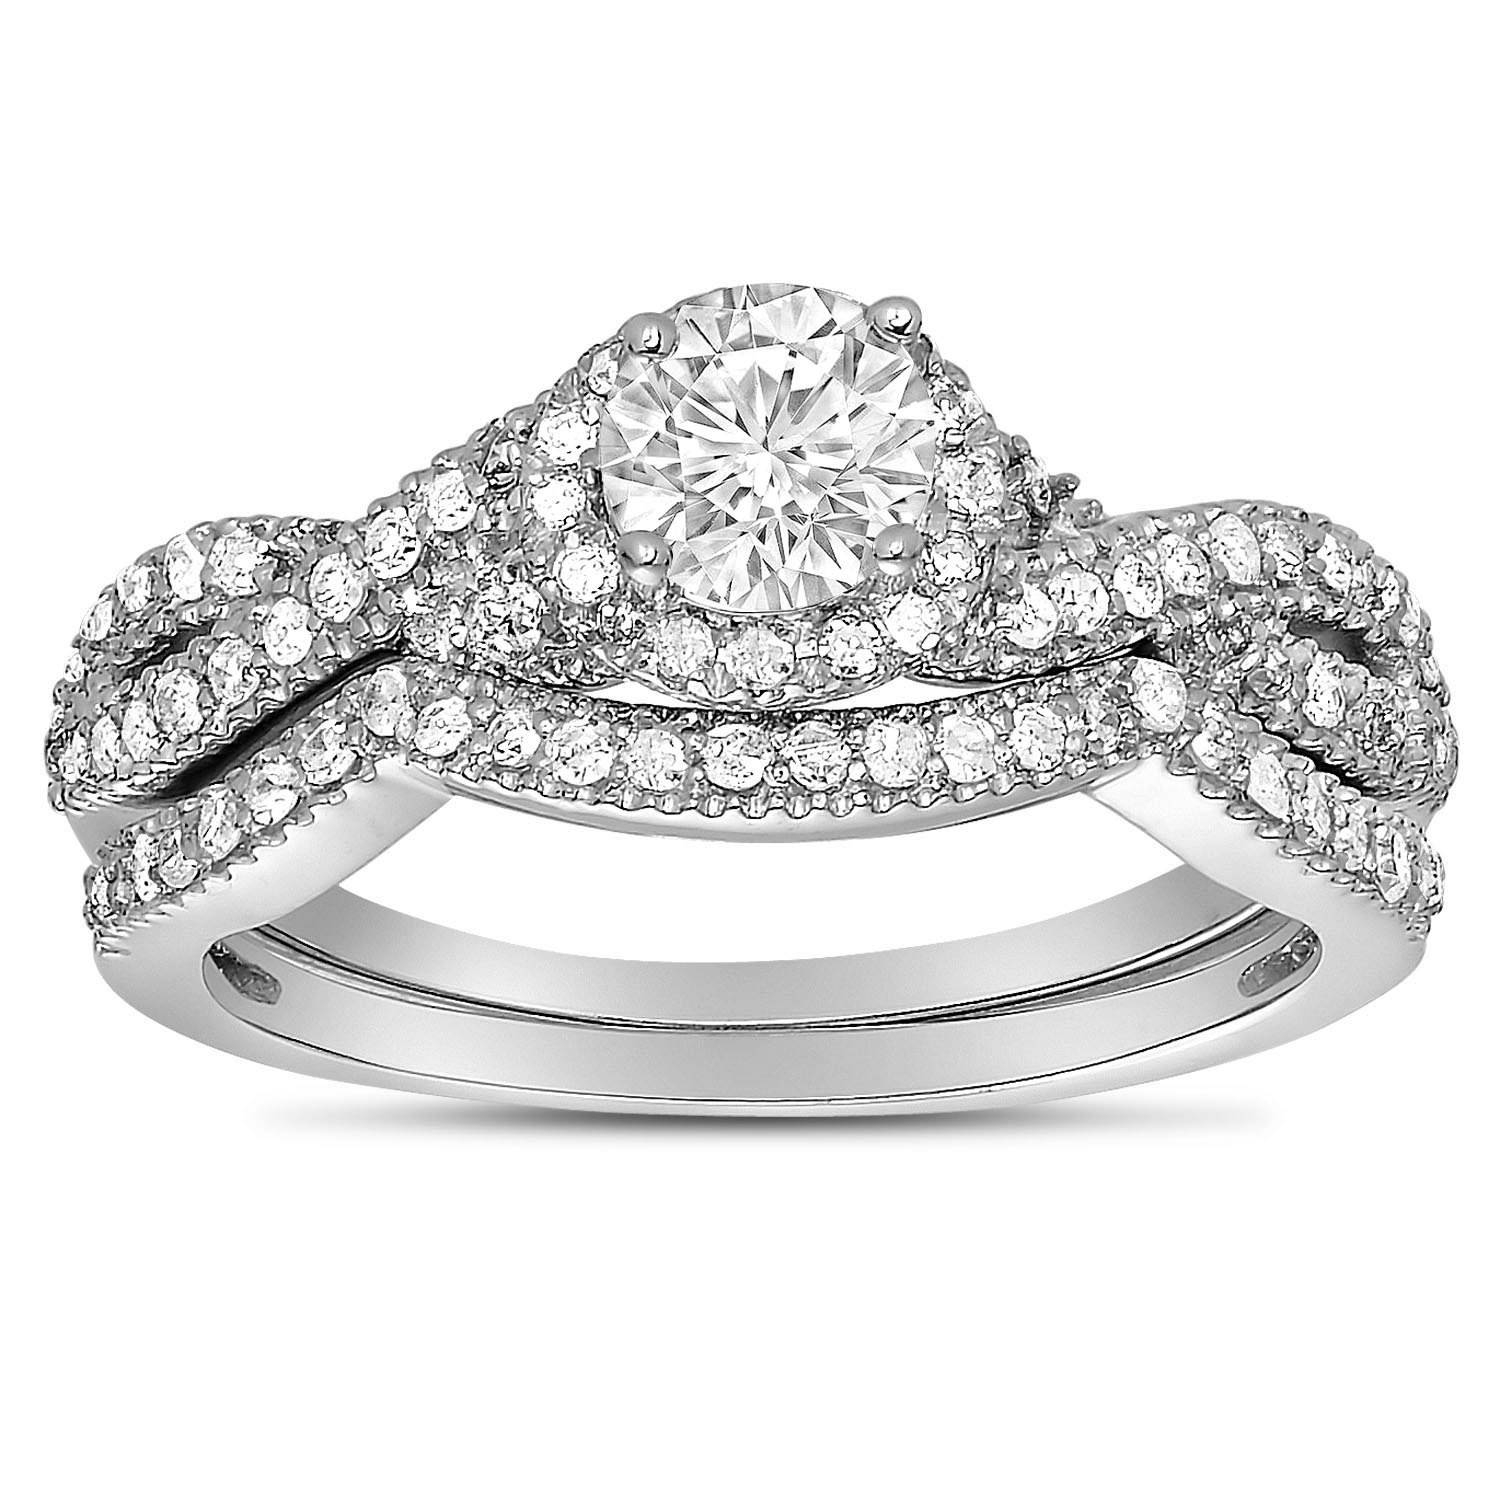 2 Carat Round Diamond Infinity Wedding Ring Set In White Gold For Throughout Diamond Wedding Rings For Her (View 5 of 15)